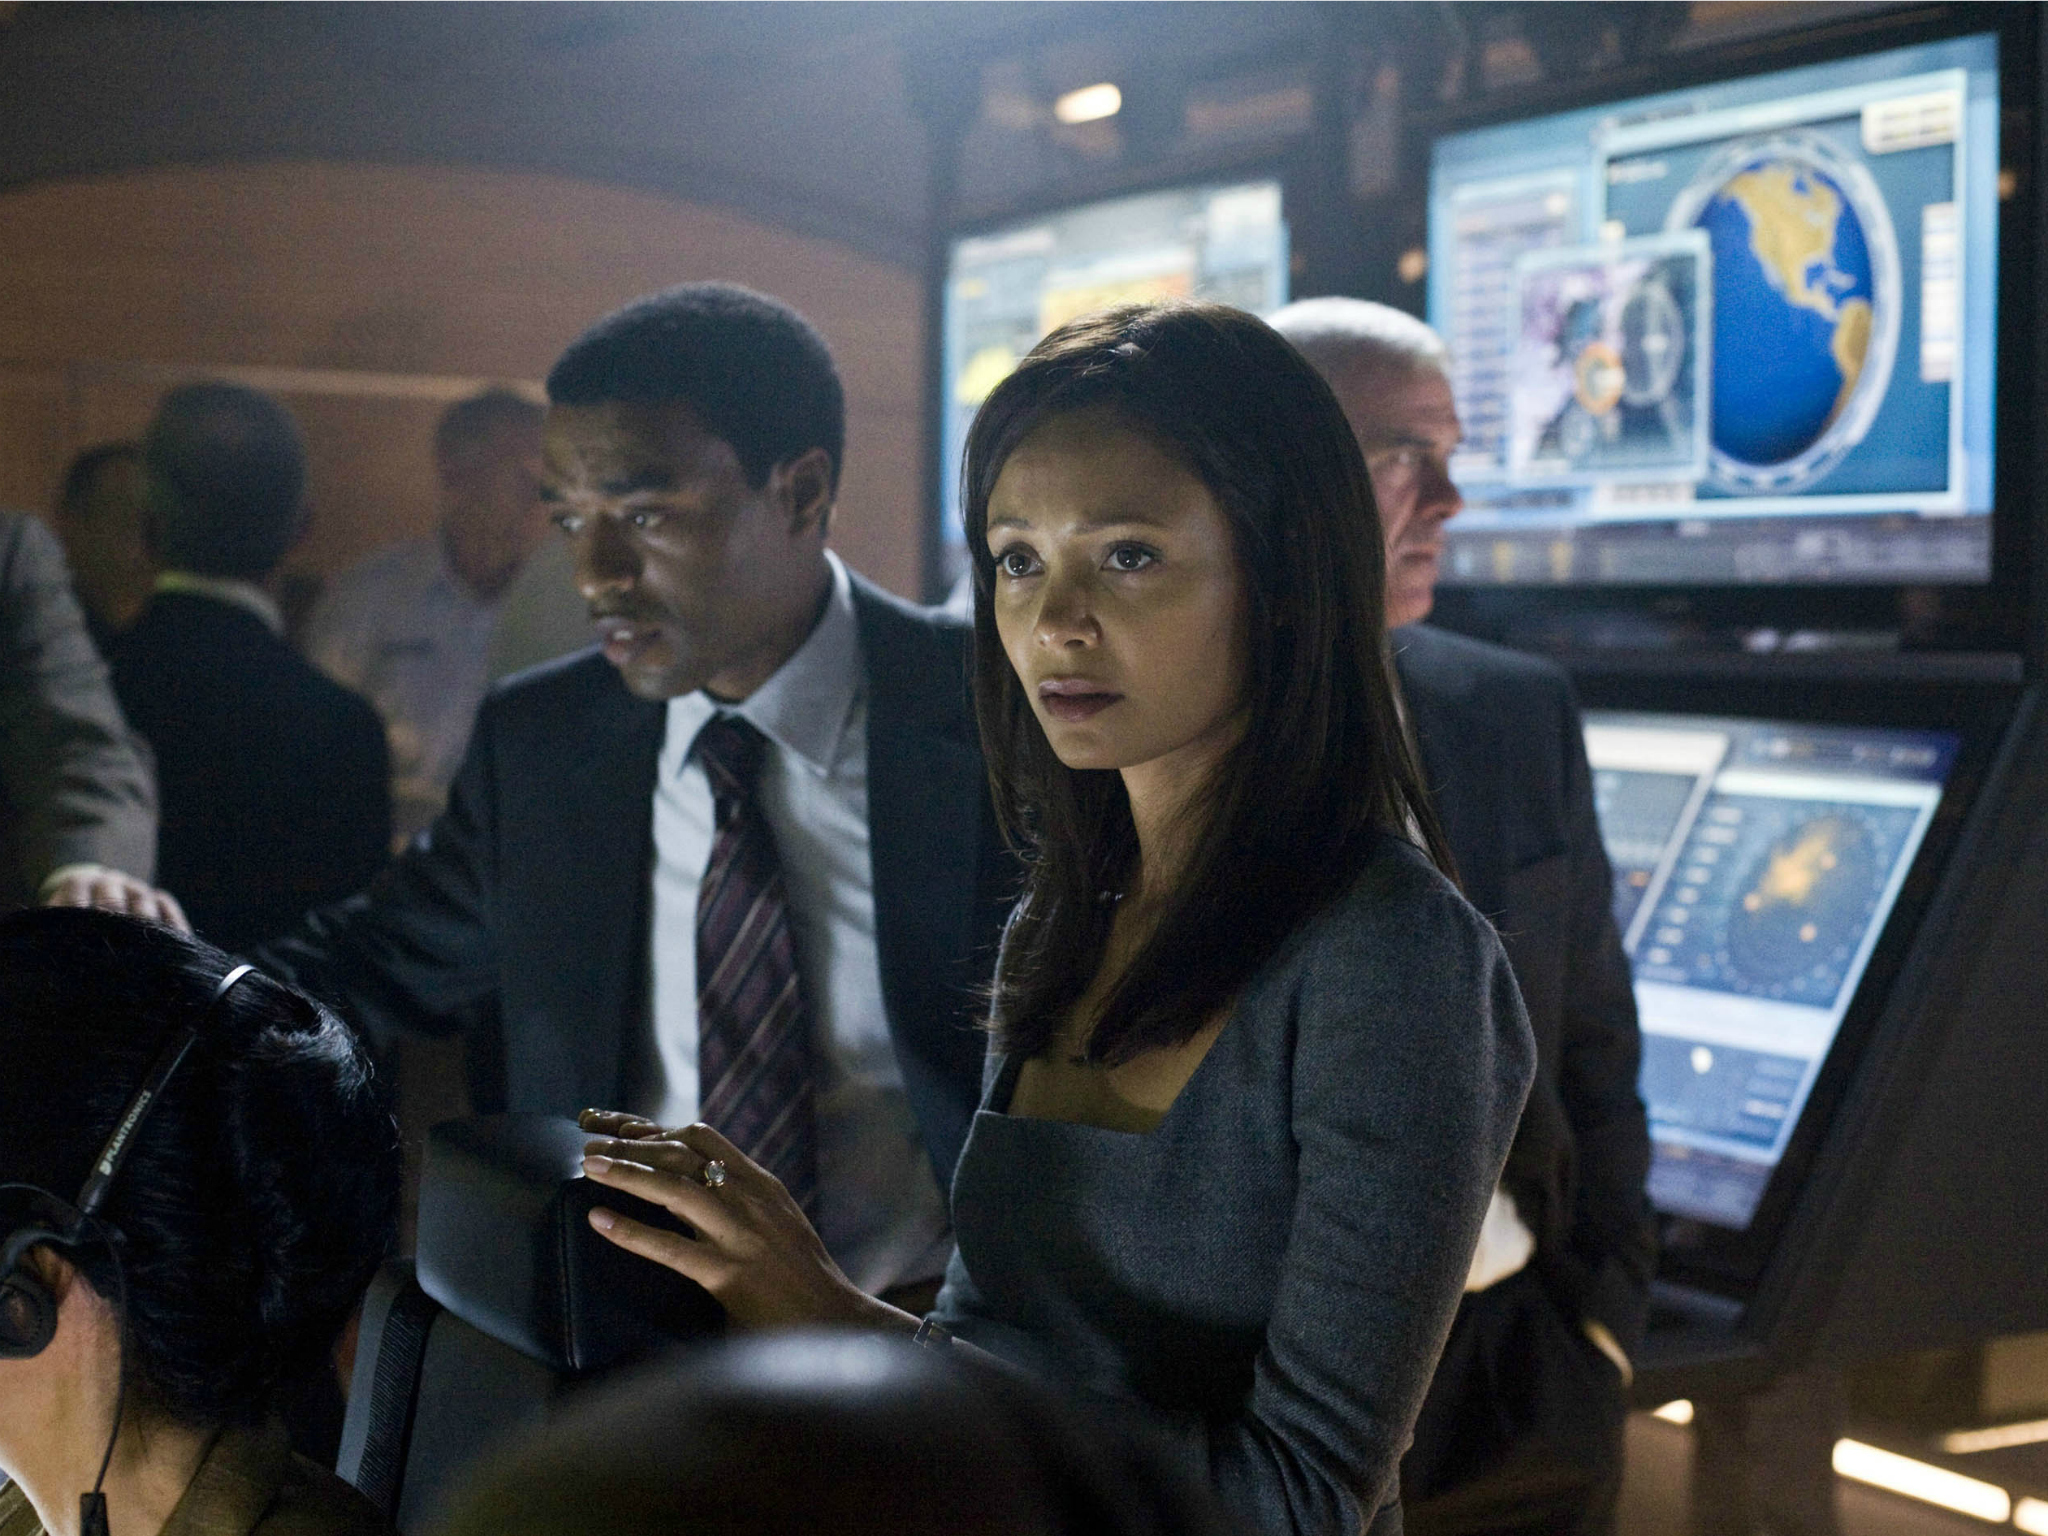 50 Great British actors, Chiwetel Ejiofor and Thandie Newton in 2012 ..Columbia Pictures.